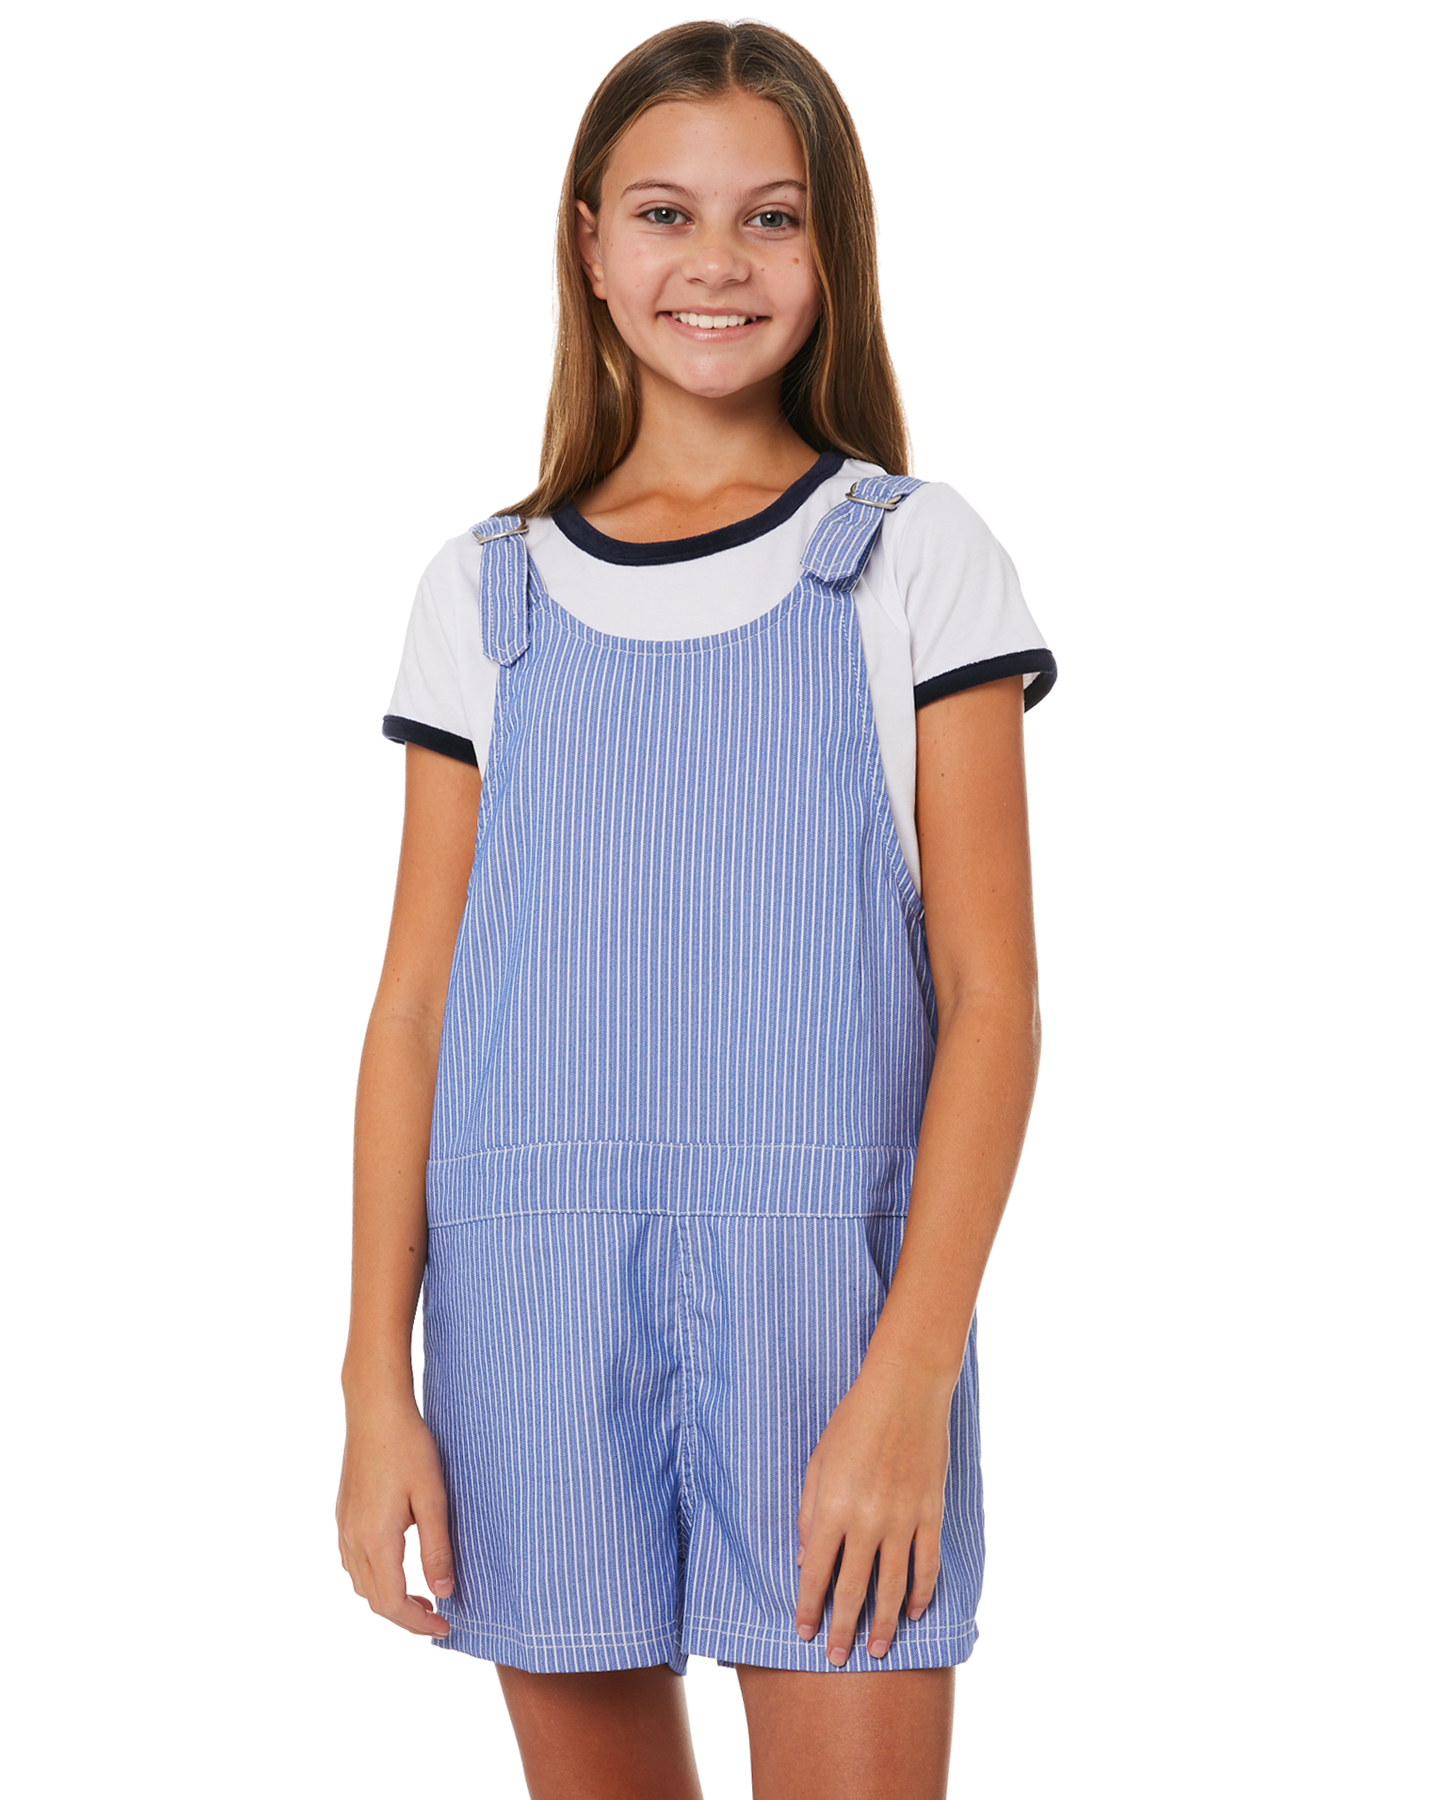 b89743a7f729 Eves Sister Kids Girls Kelly Jumpsuit Blue White Stripe Playsuit ...